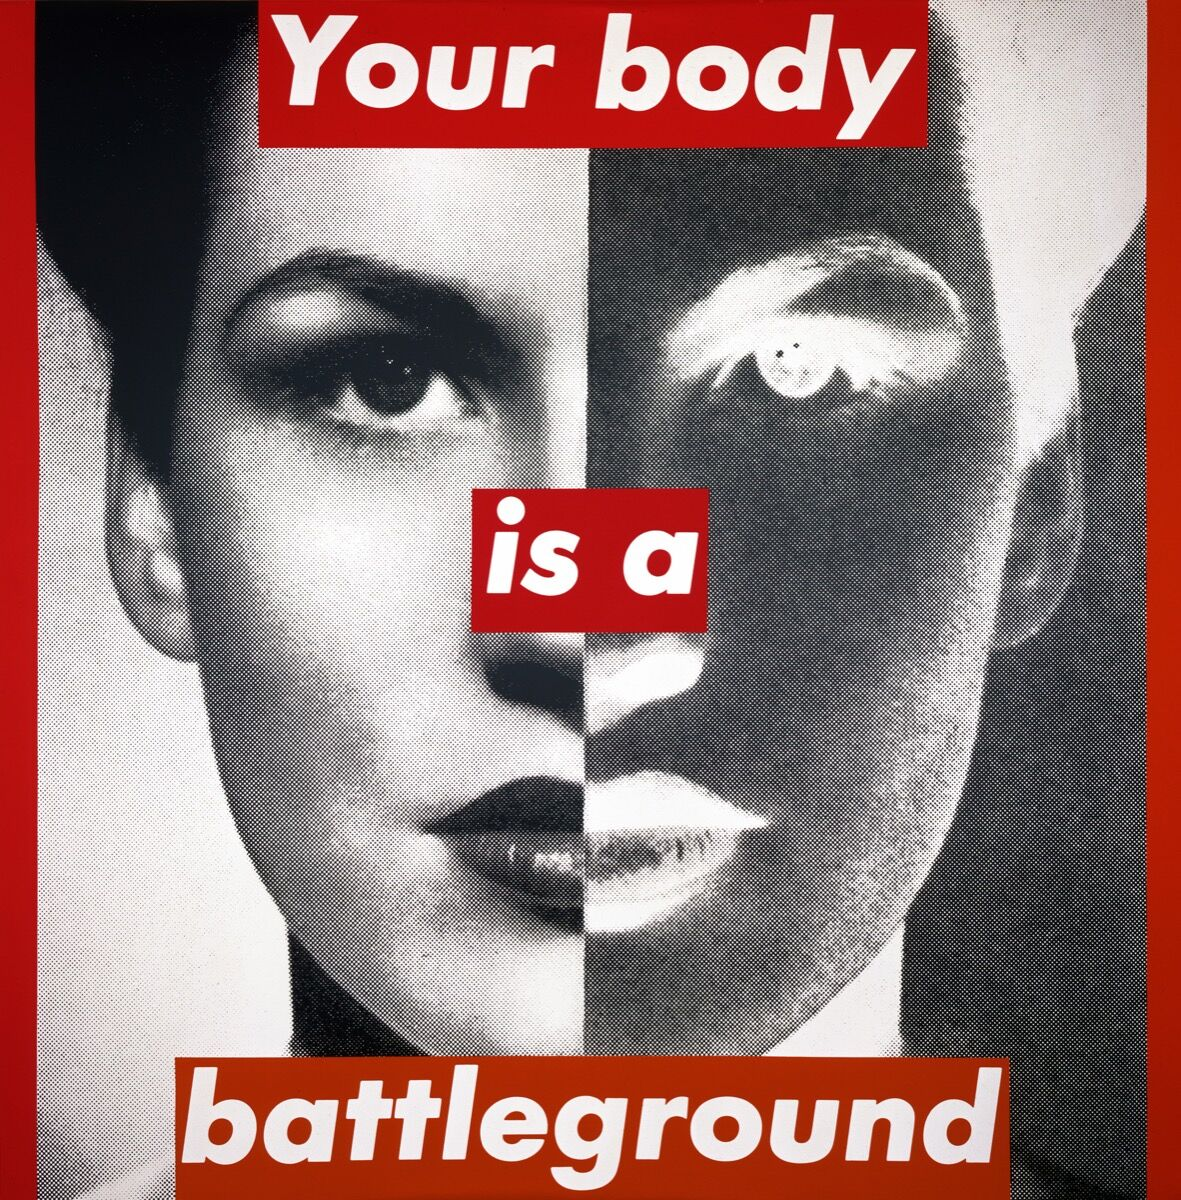 Barbara Kruger,  Untitled (Your body is a battleground) , 1989. © Barbara Kruger. Courtesy of Mary Boone Gallery, New York.